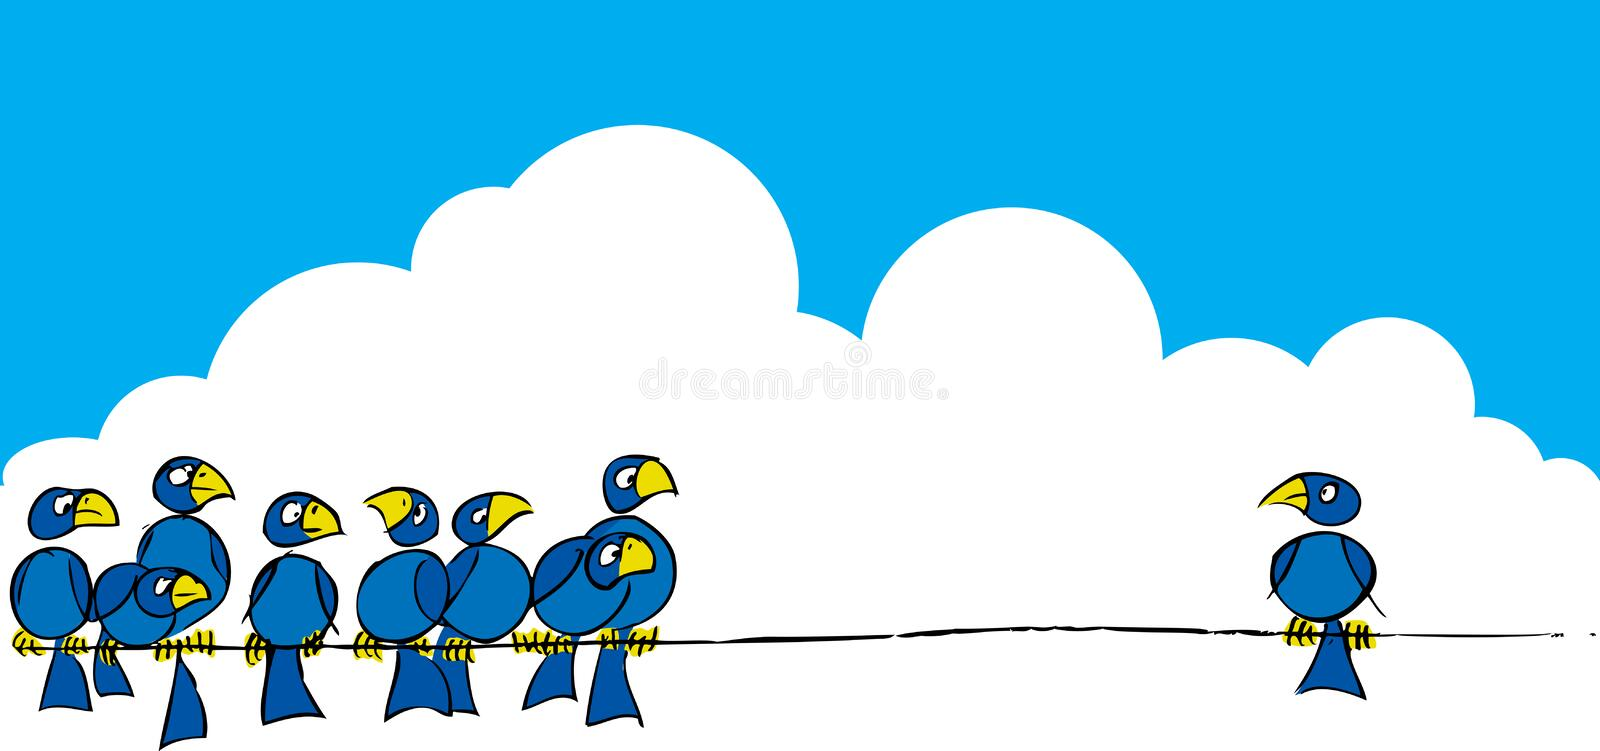 Download Birds on a wire #3 stock vector. Image of beak, painting - 7532289